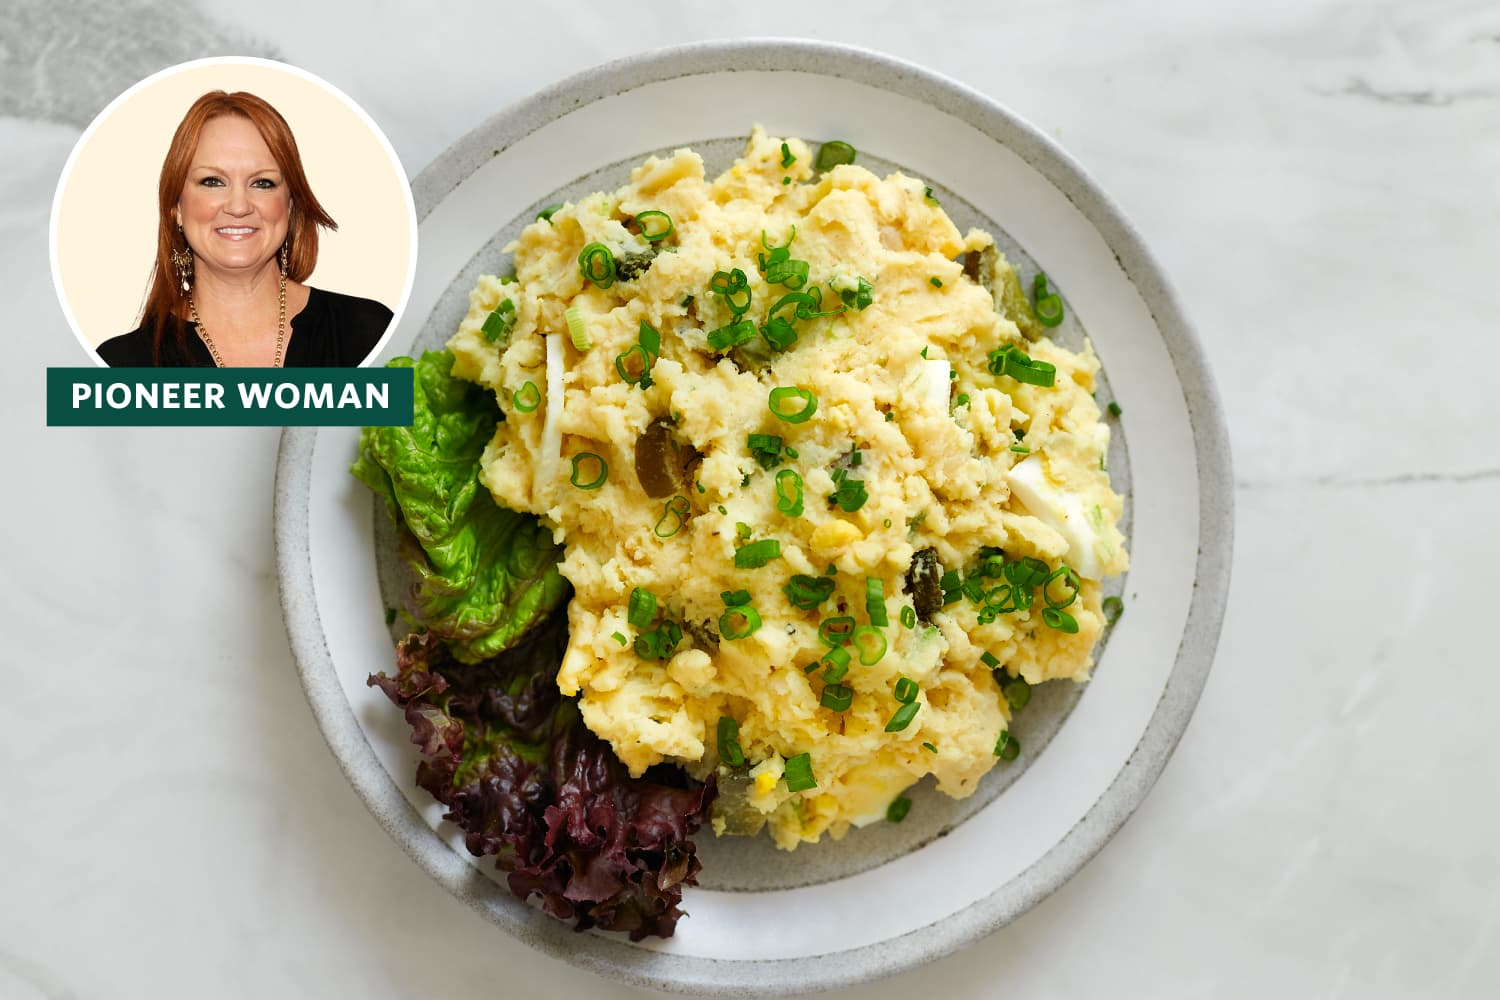 I Tried the Pioneer Woman's Rule-Breaking Potato Salad (and Honestly, I Can't Stop Eating It)